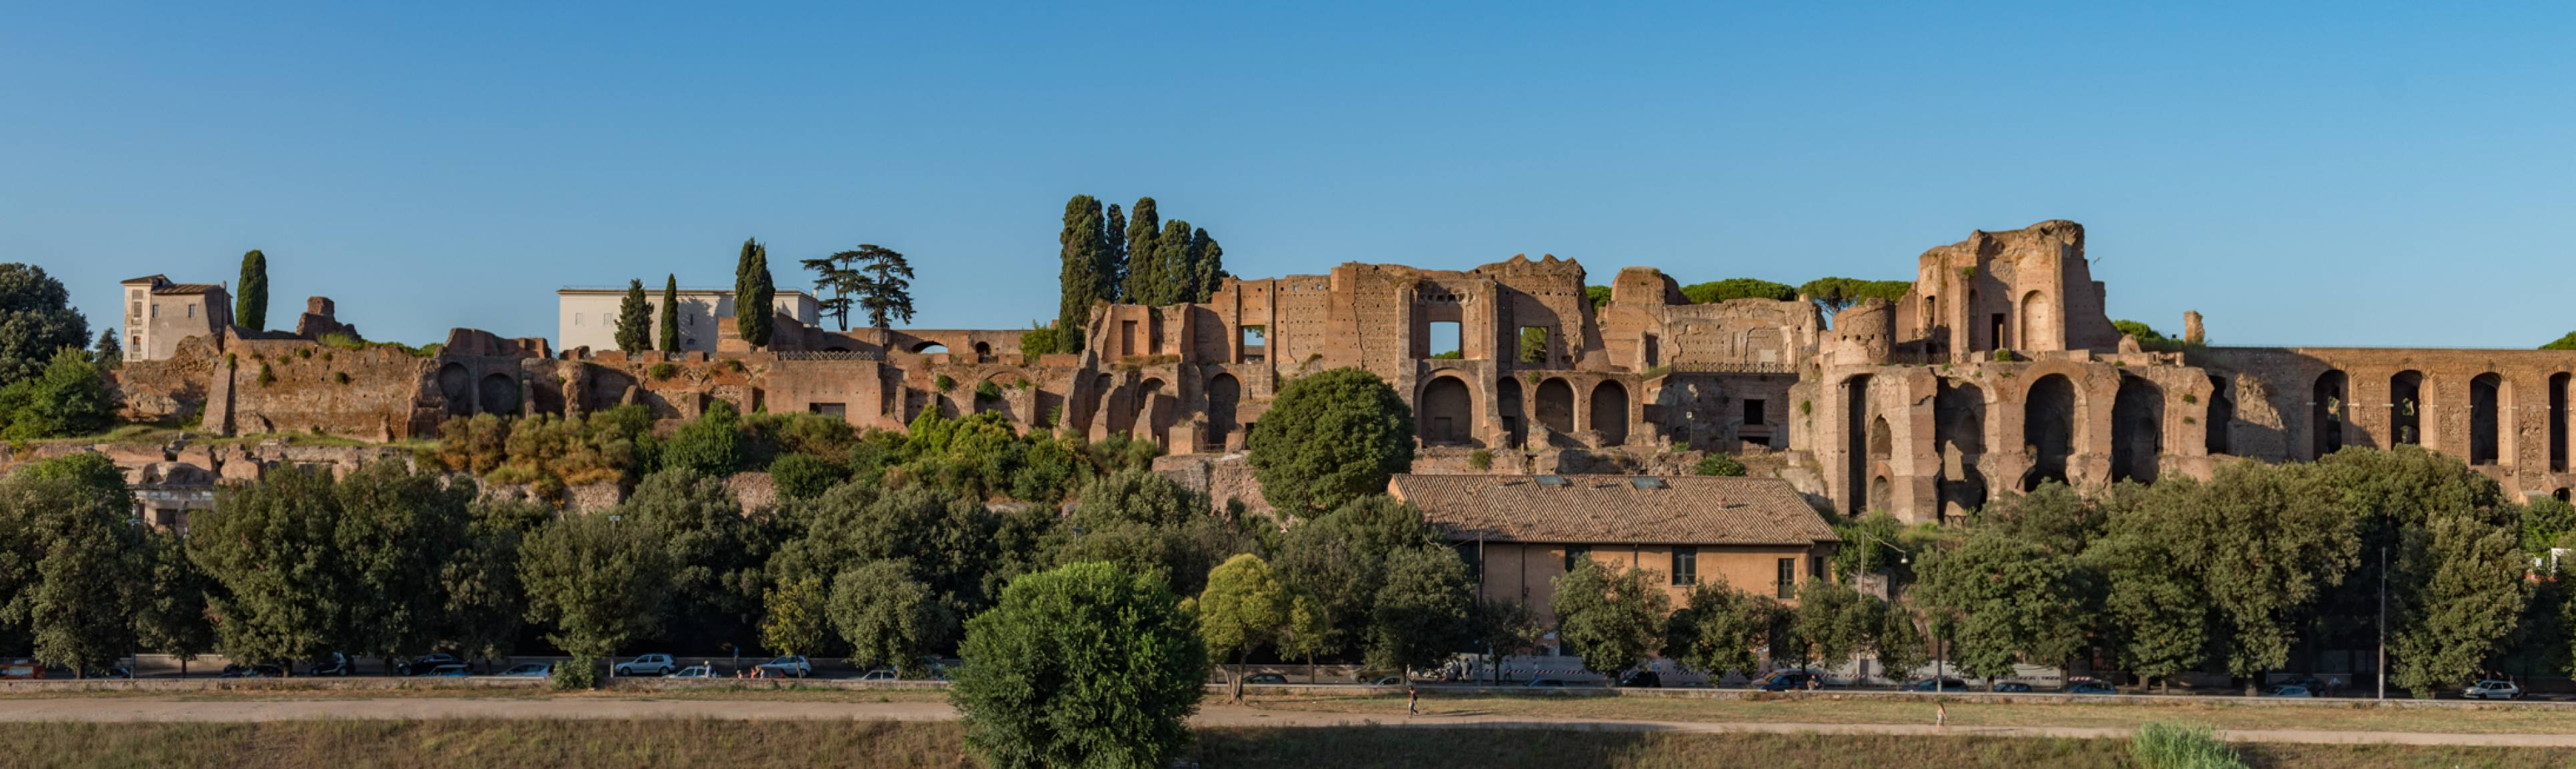 Panoramic view of Palantine Hill in Rome